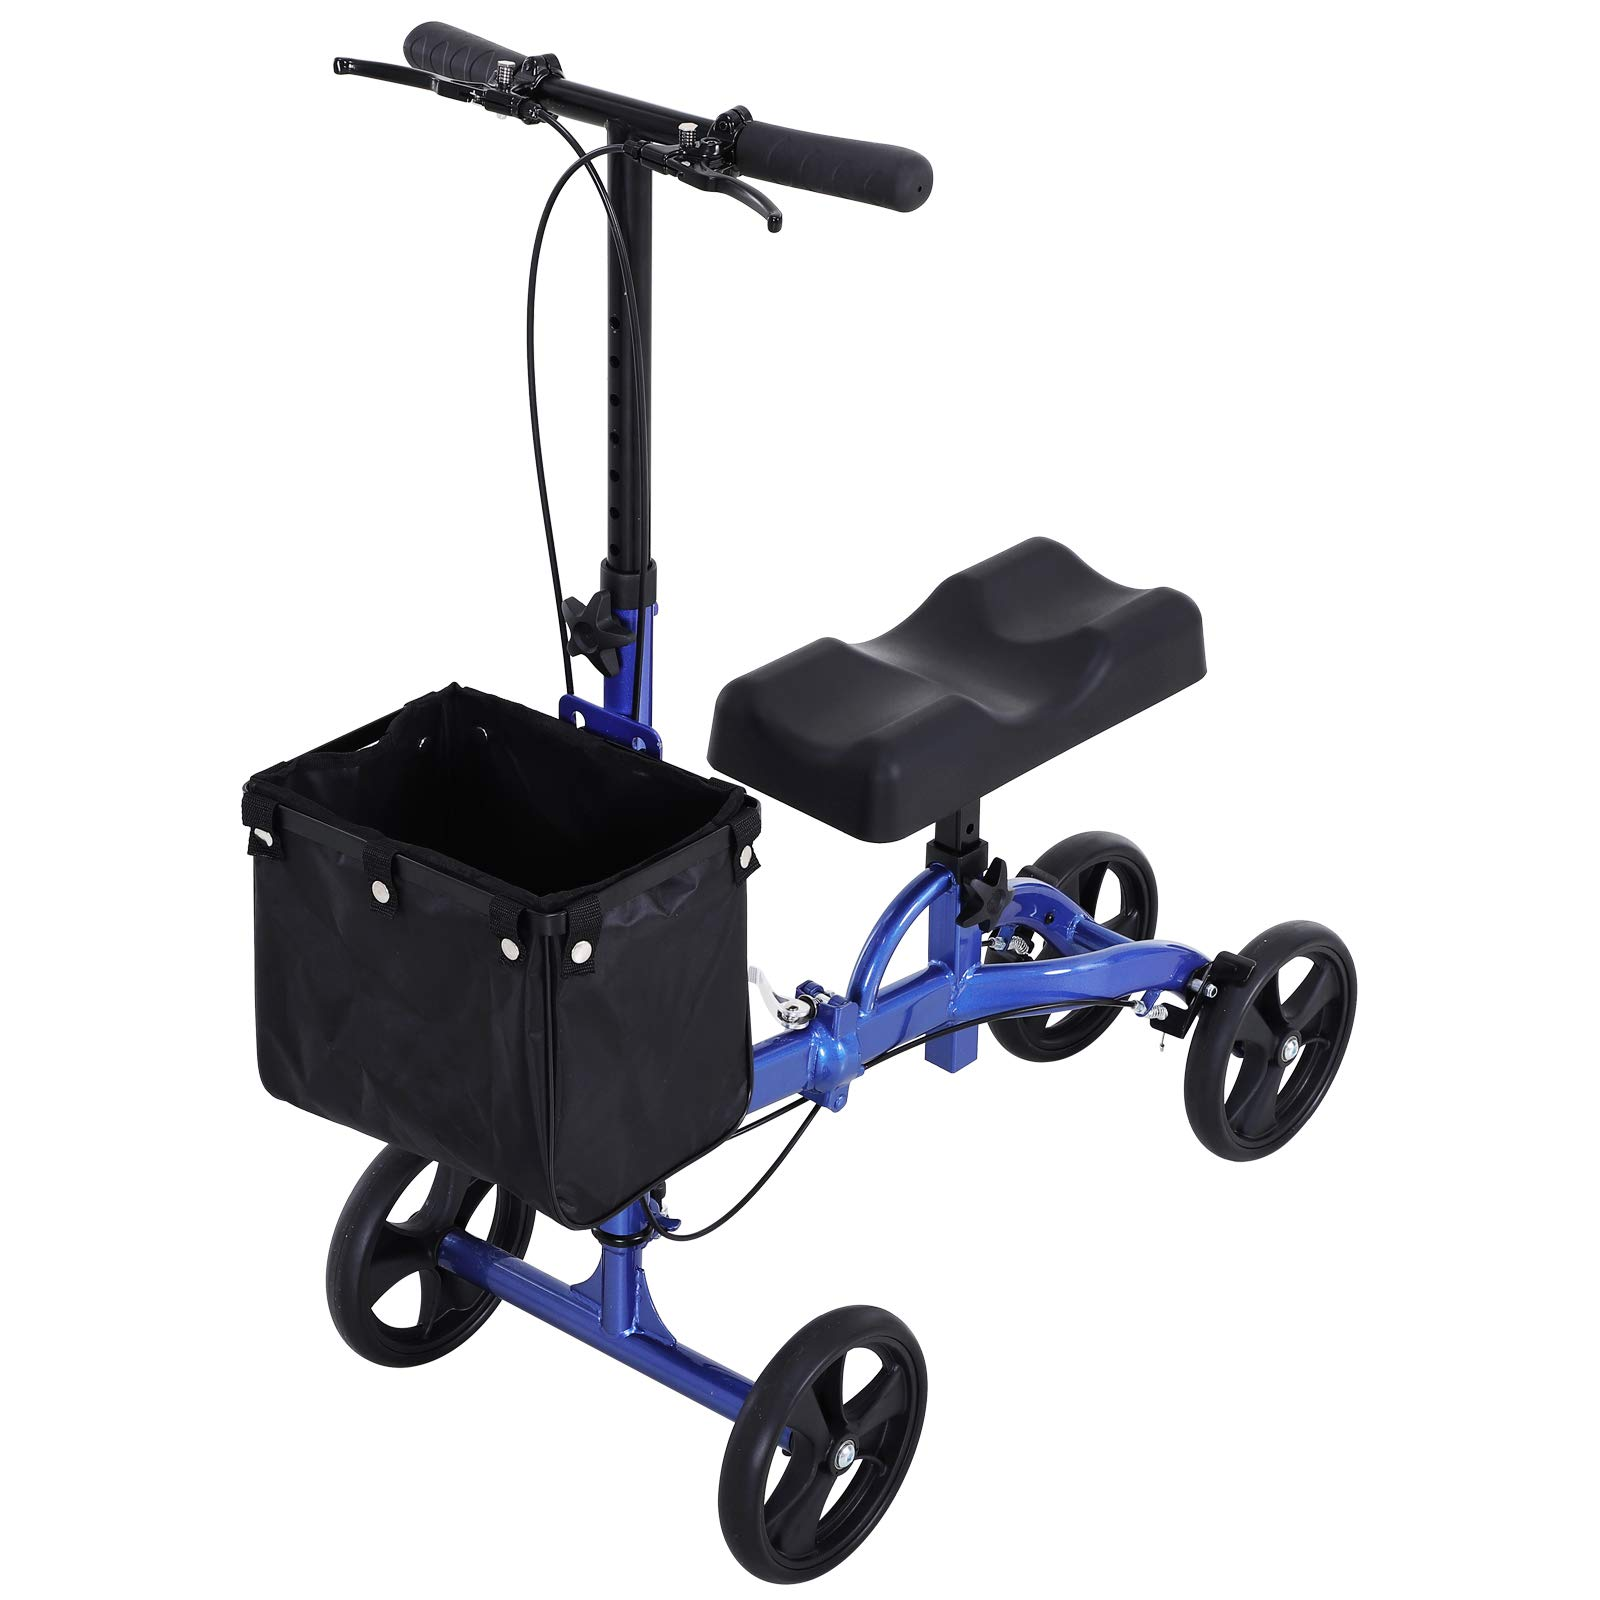 HOMCOM Medical Foldable Steerable Leg Knee Walker Scooter with Basket Attachment - Blue by HOMCOM